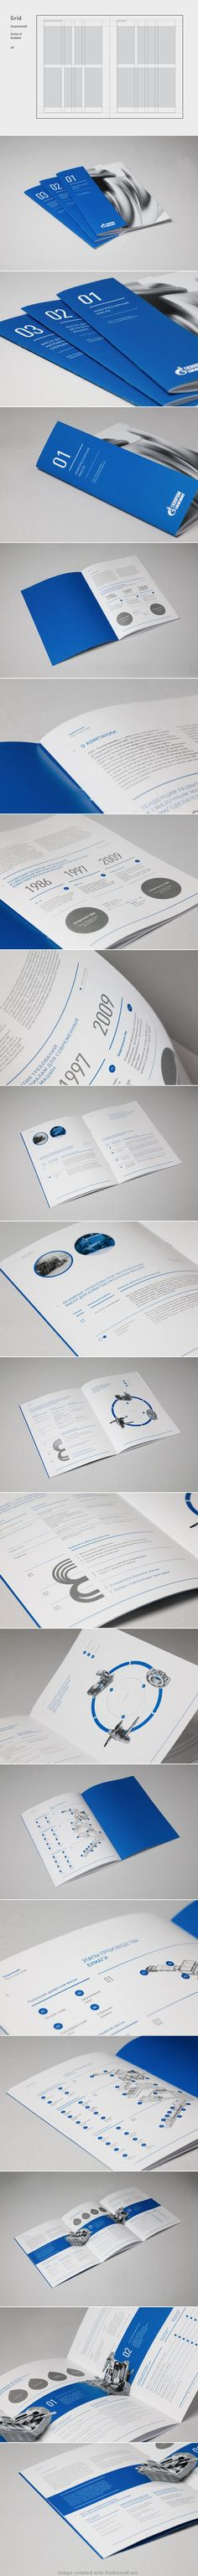 Gazpromneft booklets